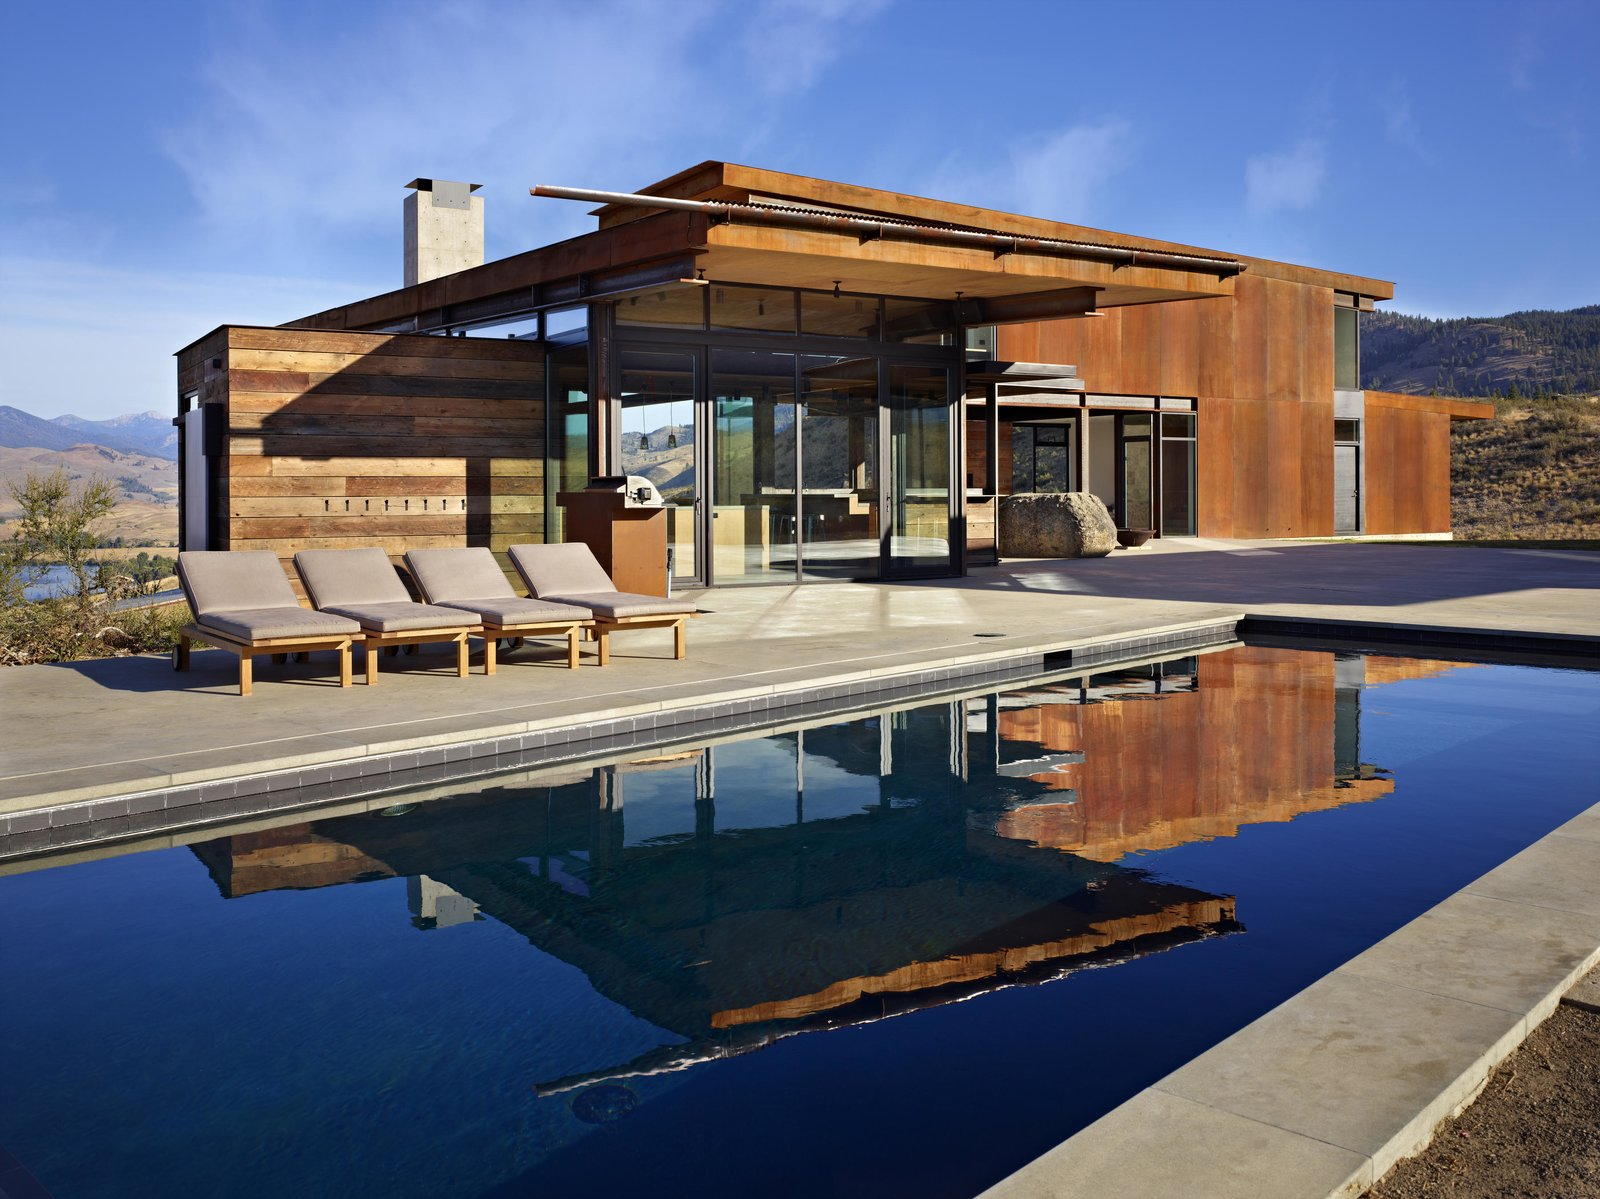 Outdoor, Large, Large, Concrete, Concrete, and Desert In the summer months, the pool provides a welcome respite from the heat.  Outdoor Desert Concrete Photos from A Steel-and-Glass Compound Is One Family's Launchpad For Adventure